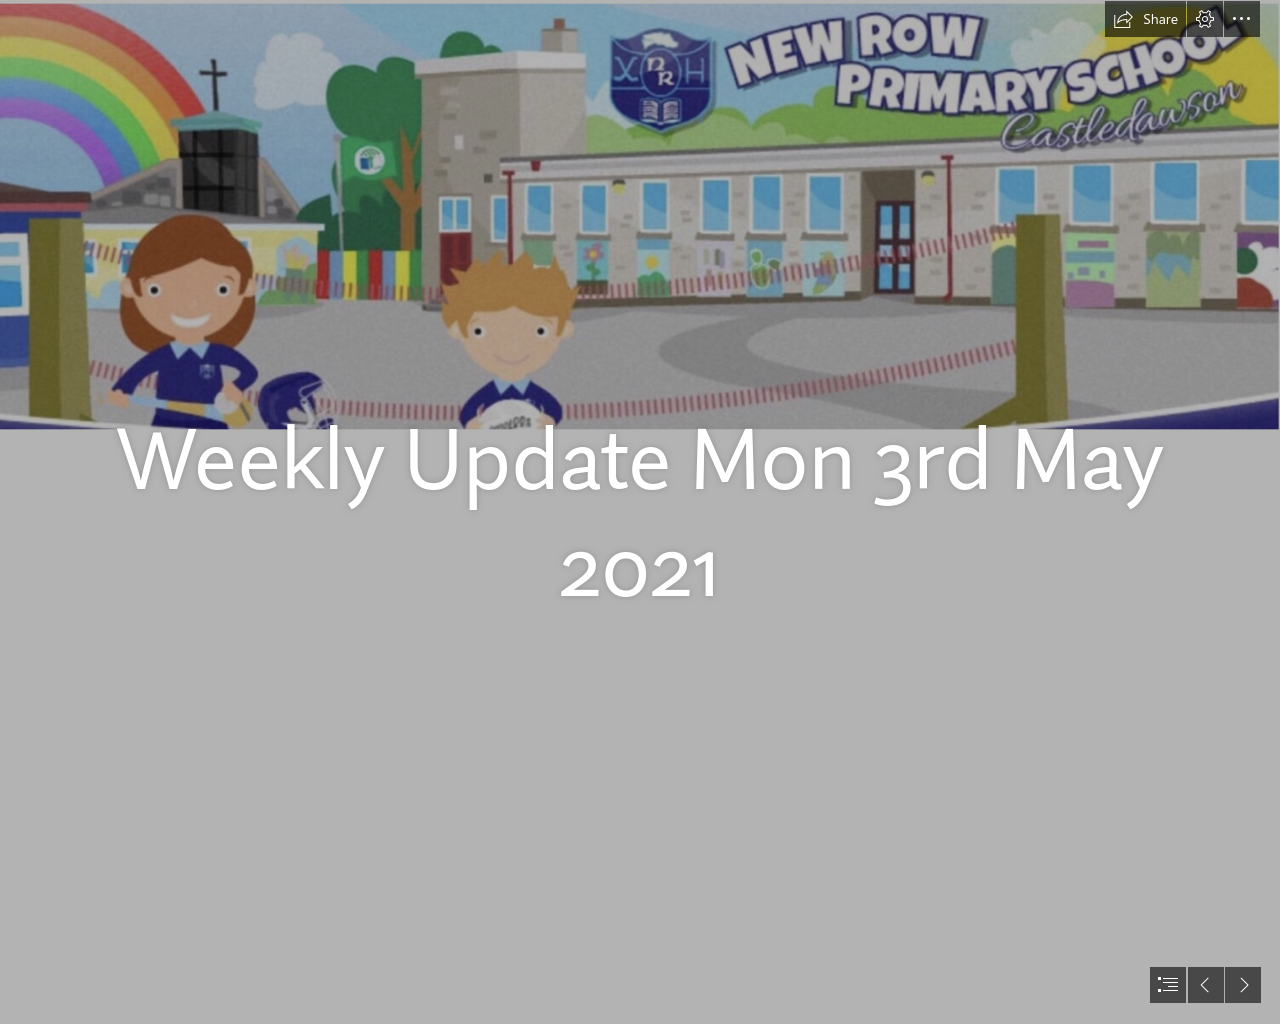 Weekly Update Mon 3rd May 2021